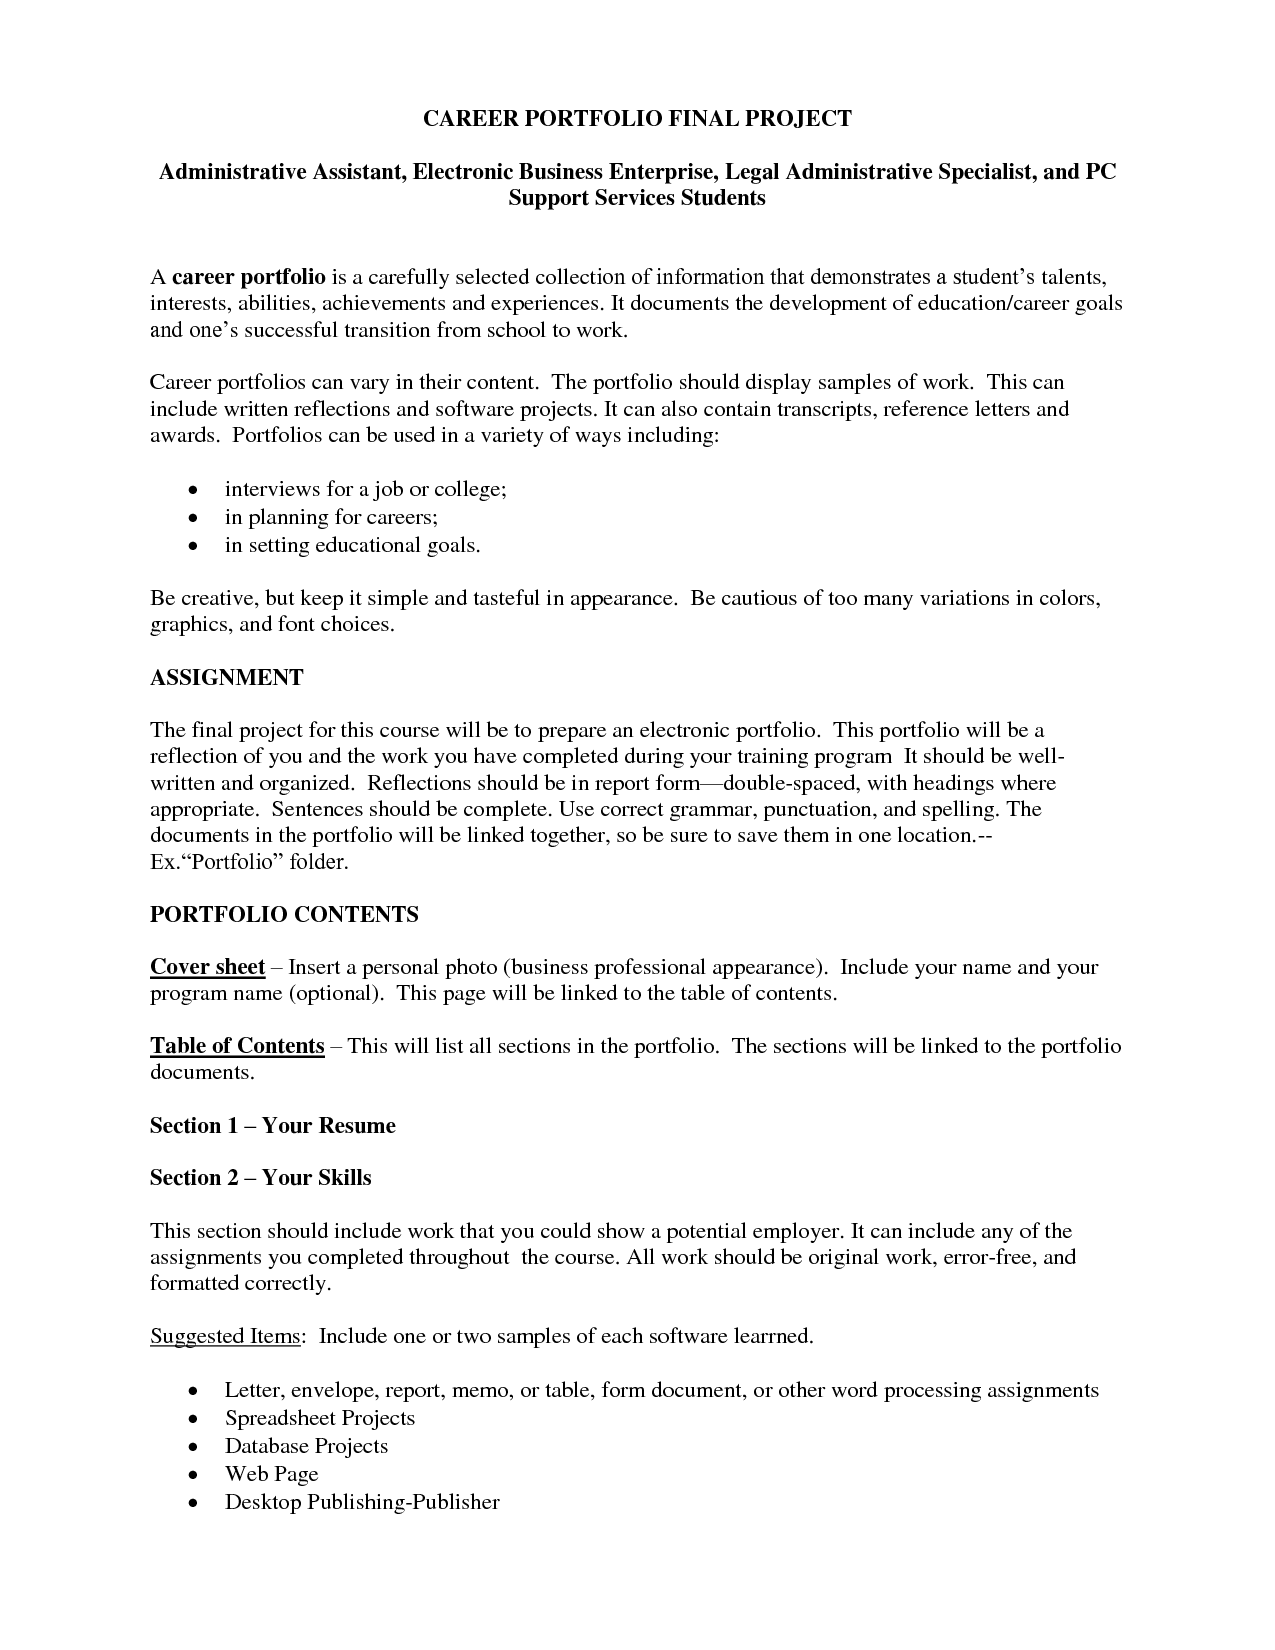 legal administrative resume samples httpersumecomlegal administrative - Administrative Support Resume Samples